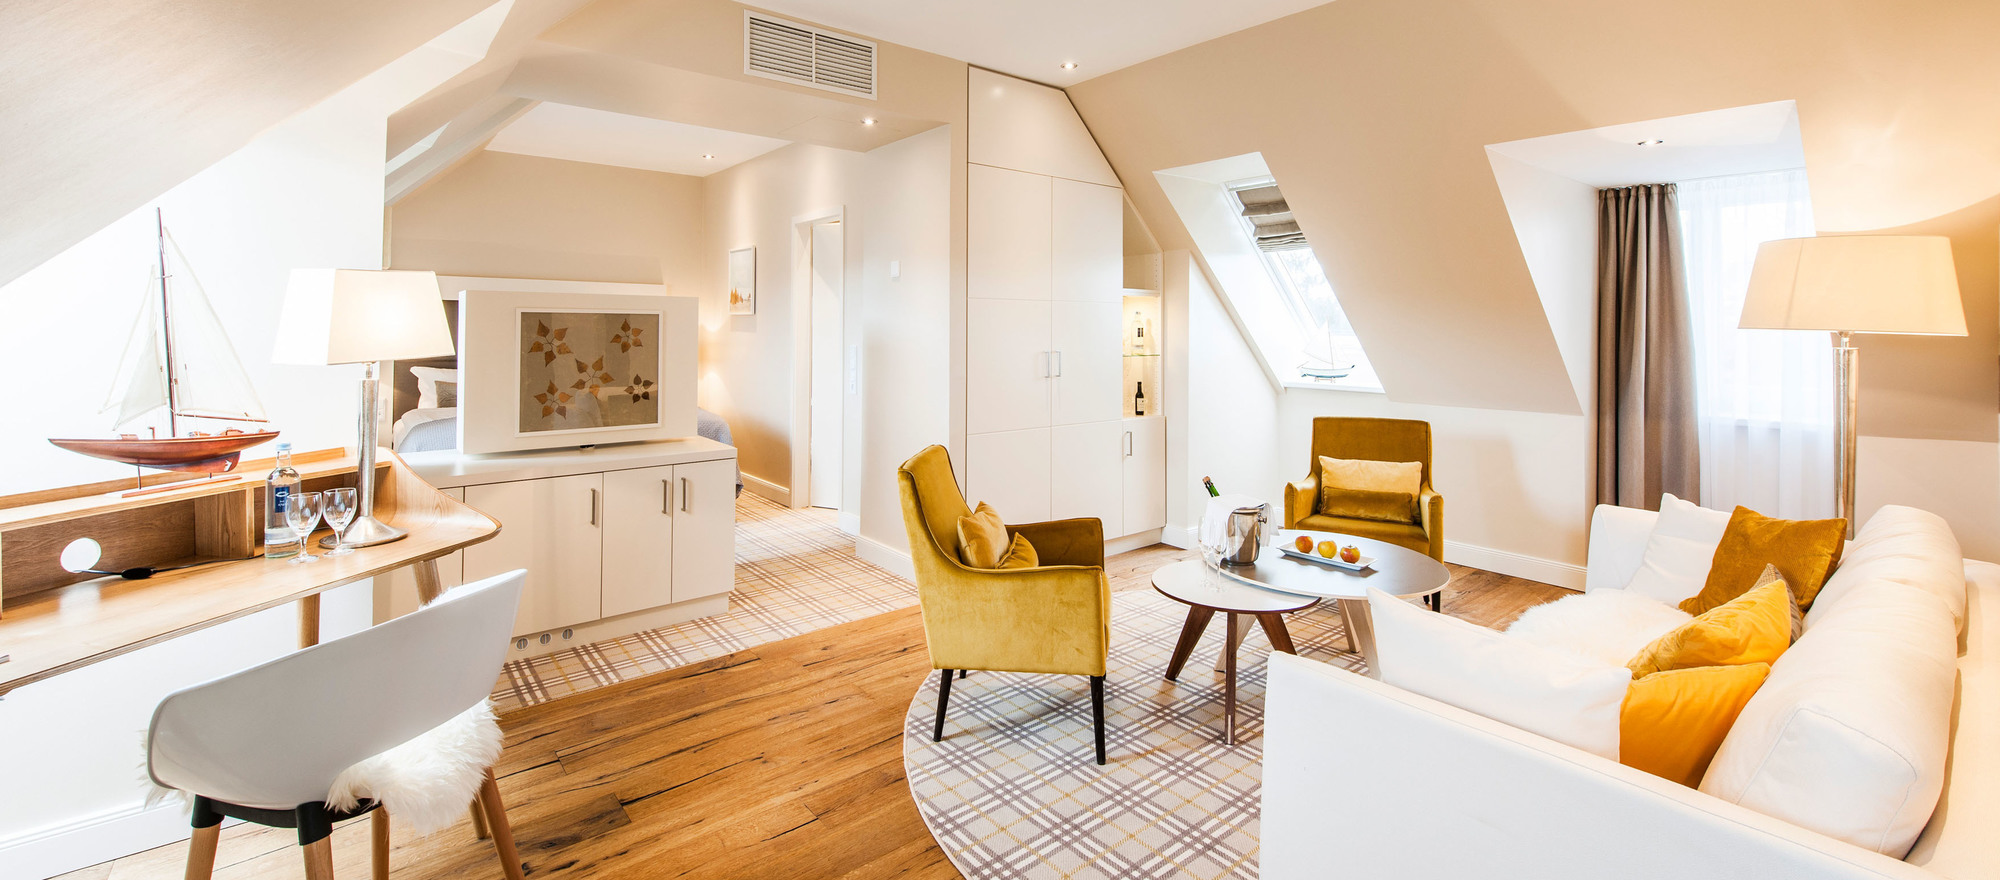 Junior Suite with spacious living room area and seating facillities in the 4-star hotel Ringhotel Birke in Kiel